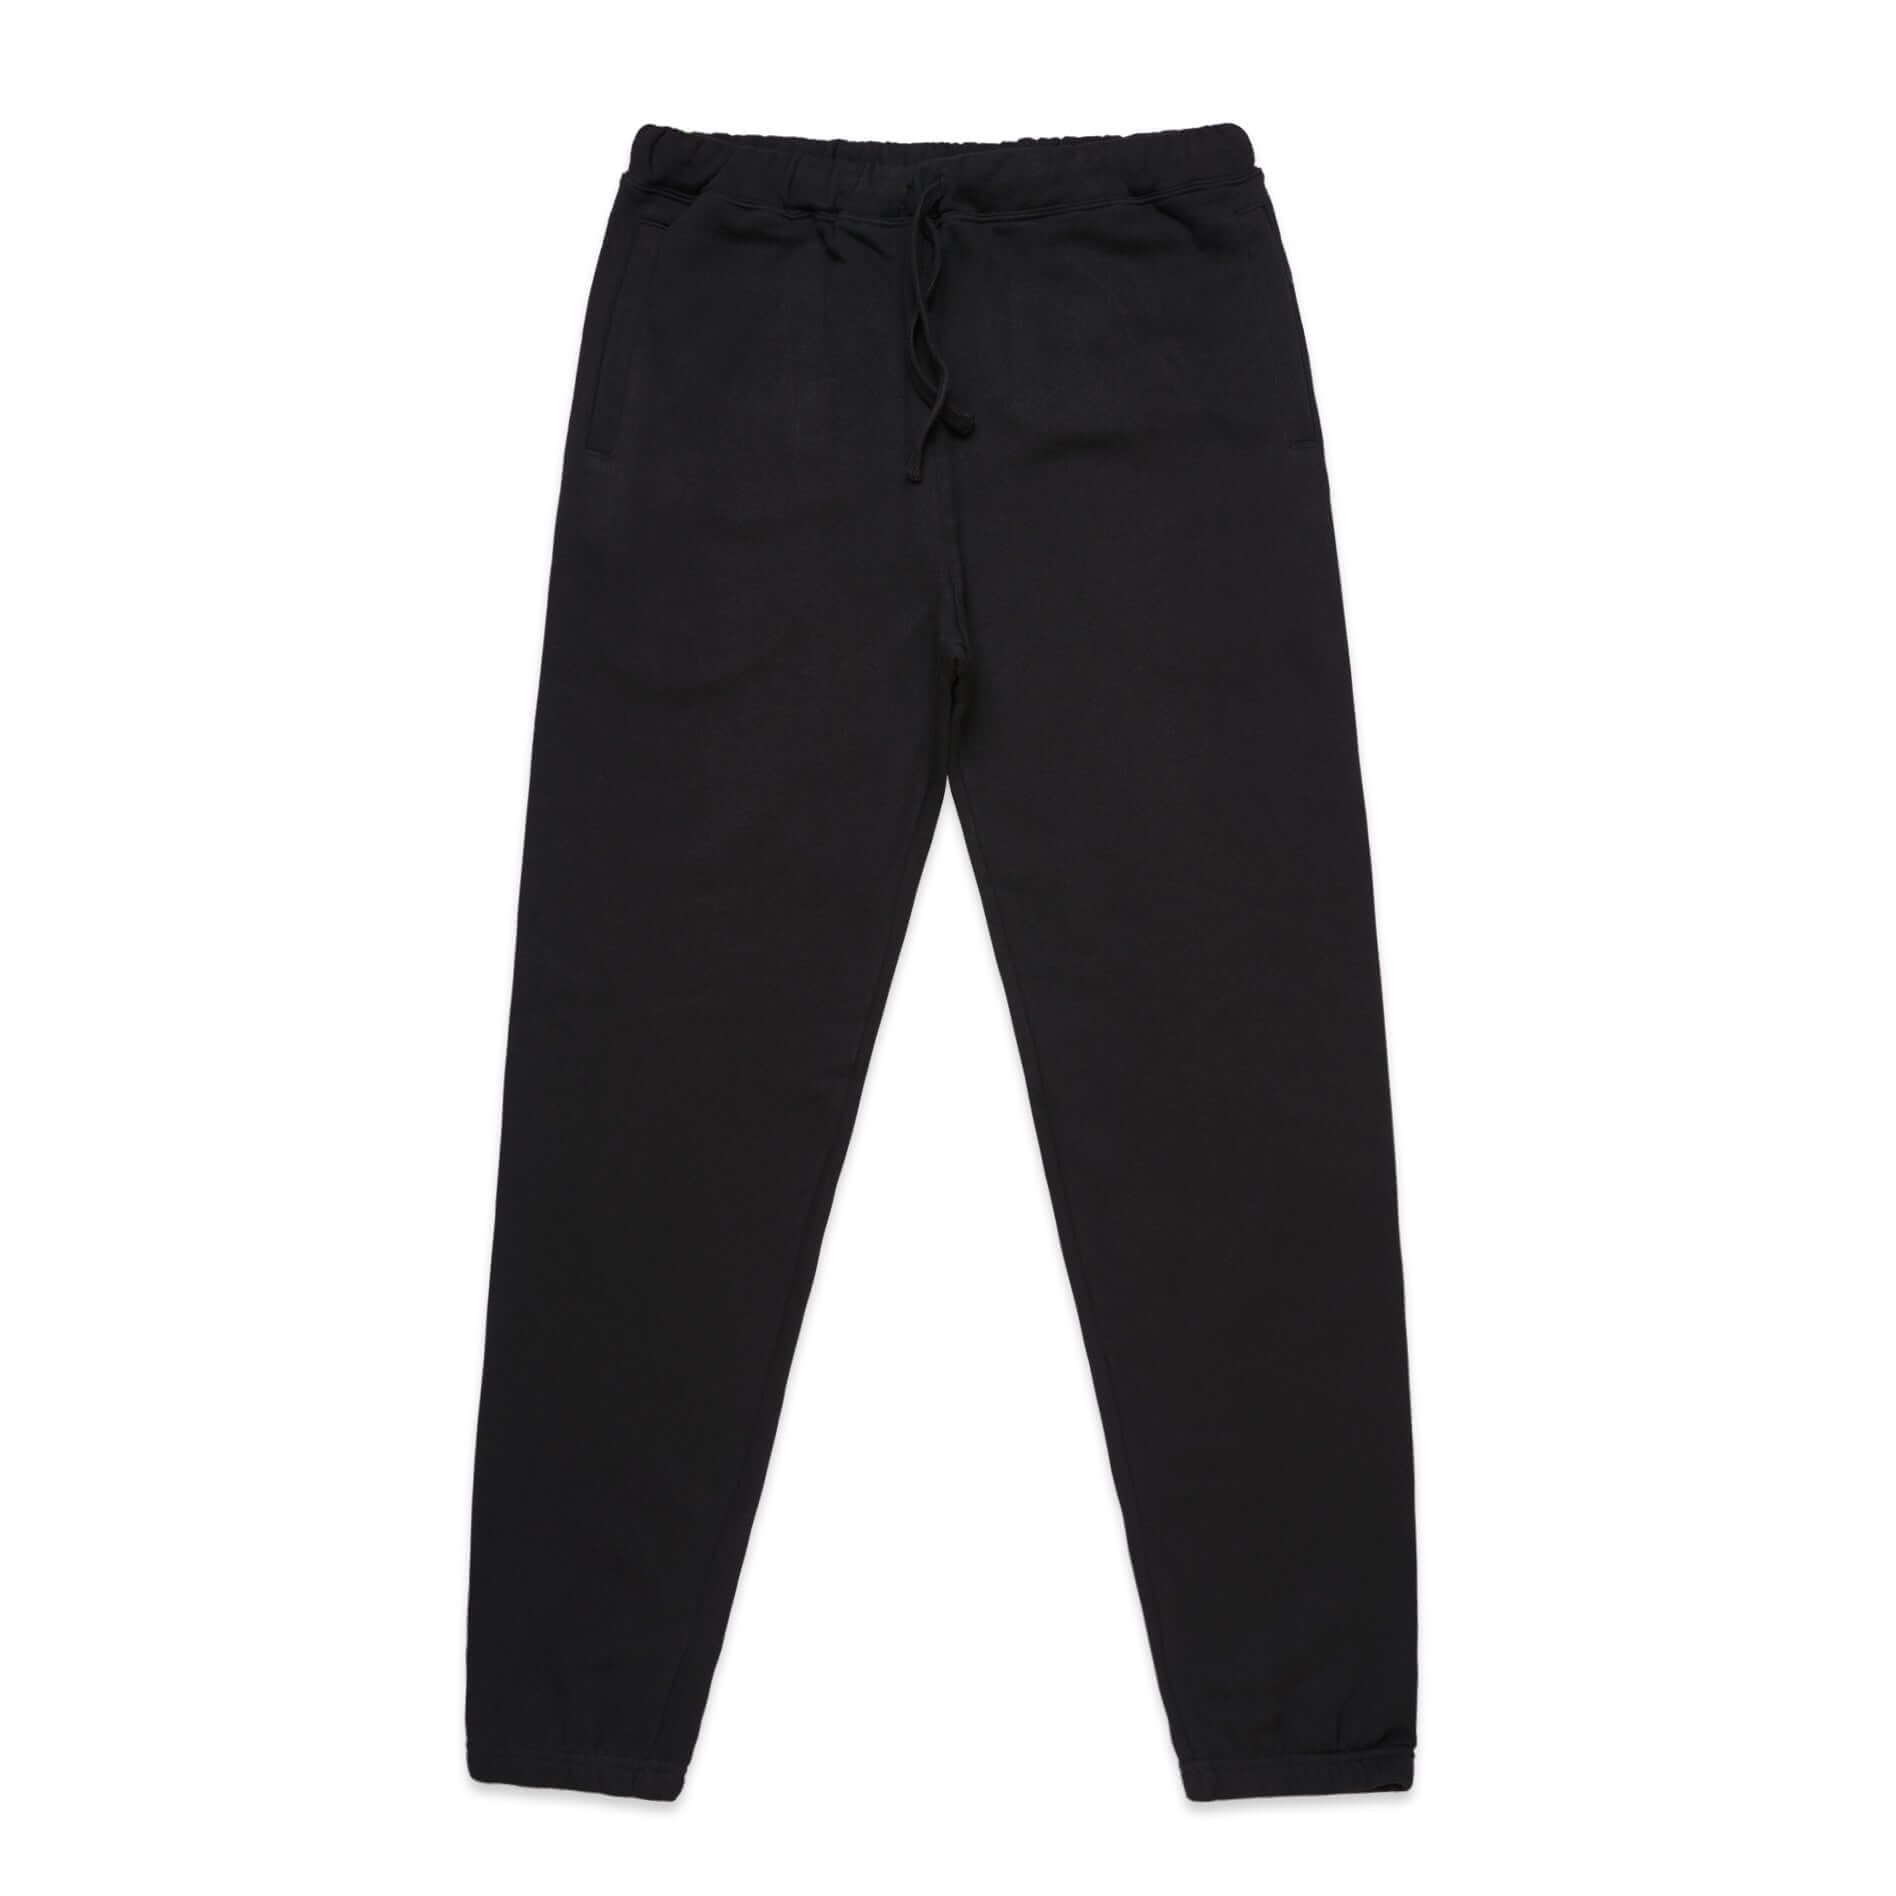 AS Colour SURPLUS TRACK PANT - Black